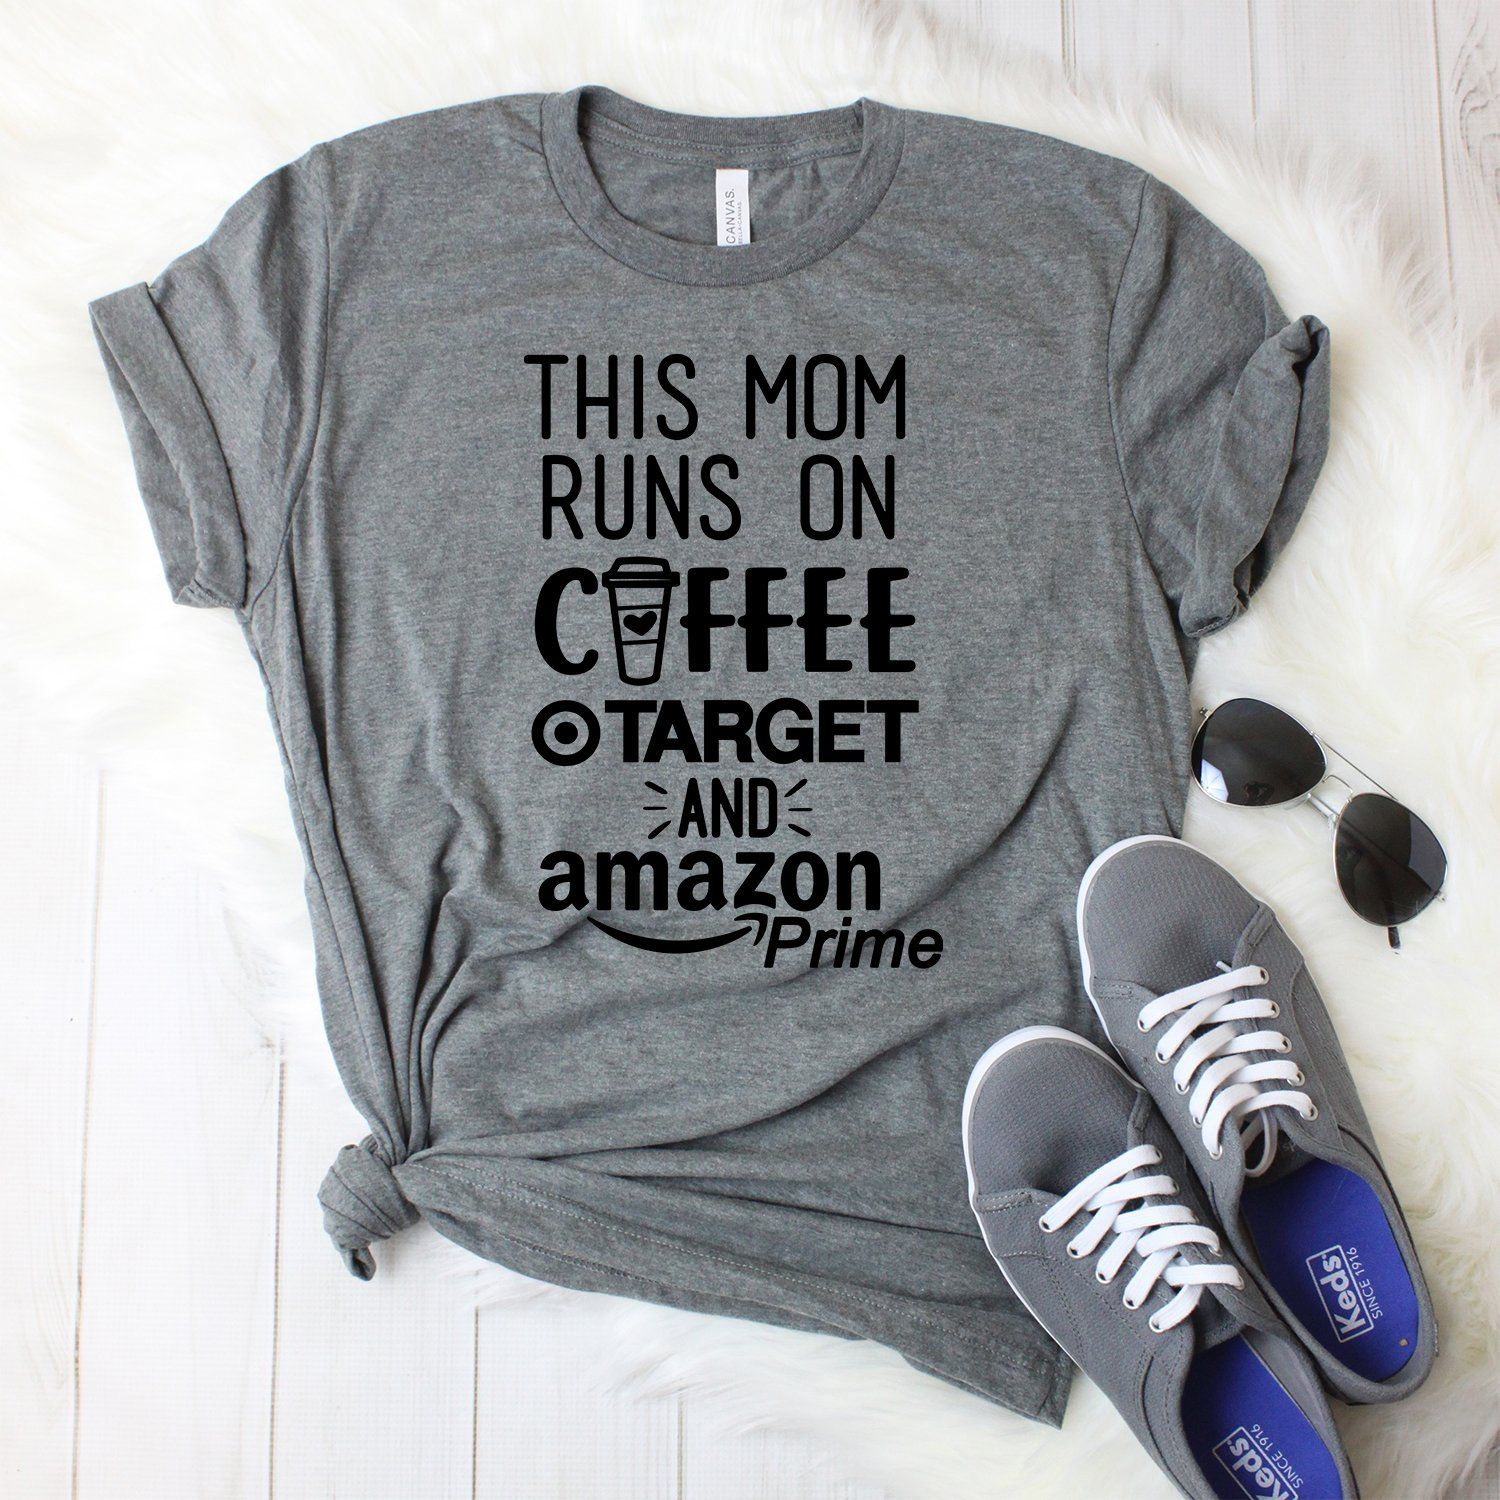 84a8f0eb This Mom Runs on Coffee, Target, and Amazon Prime T-Shirt | Love ...